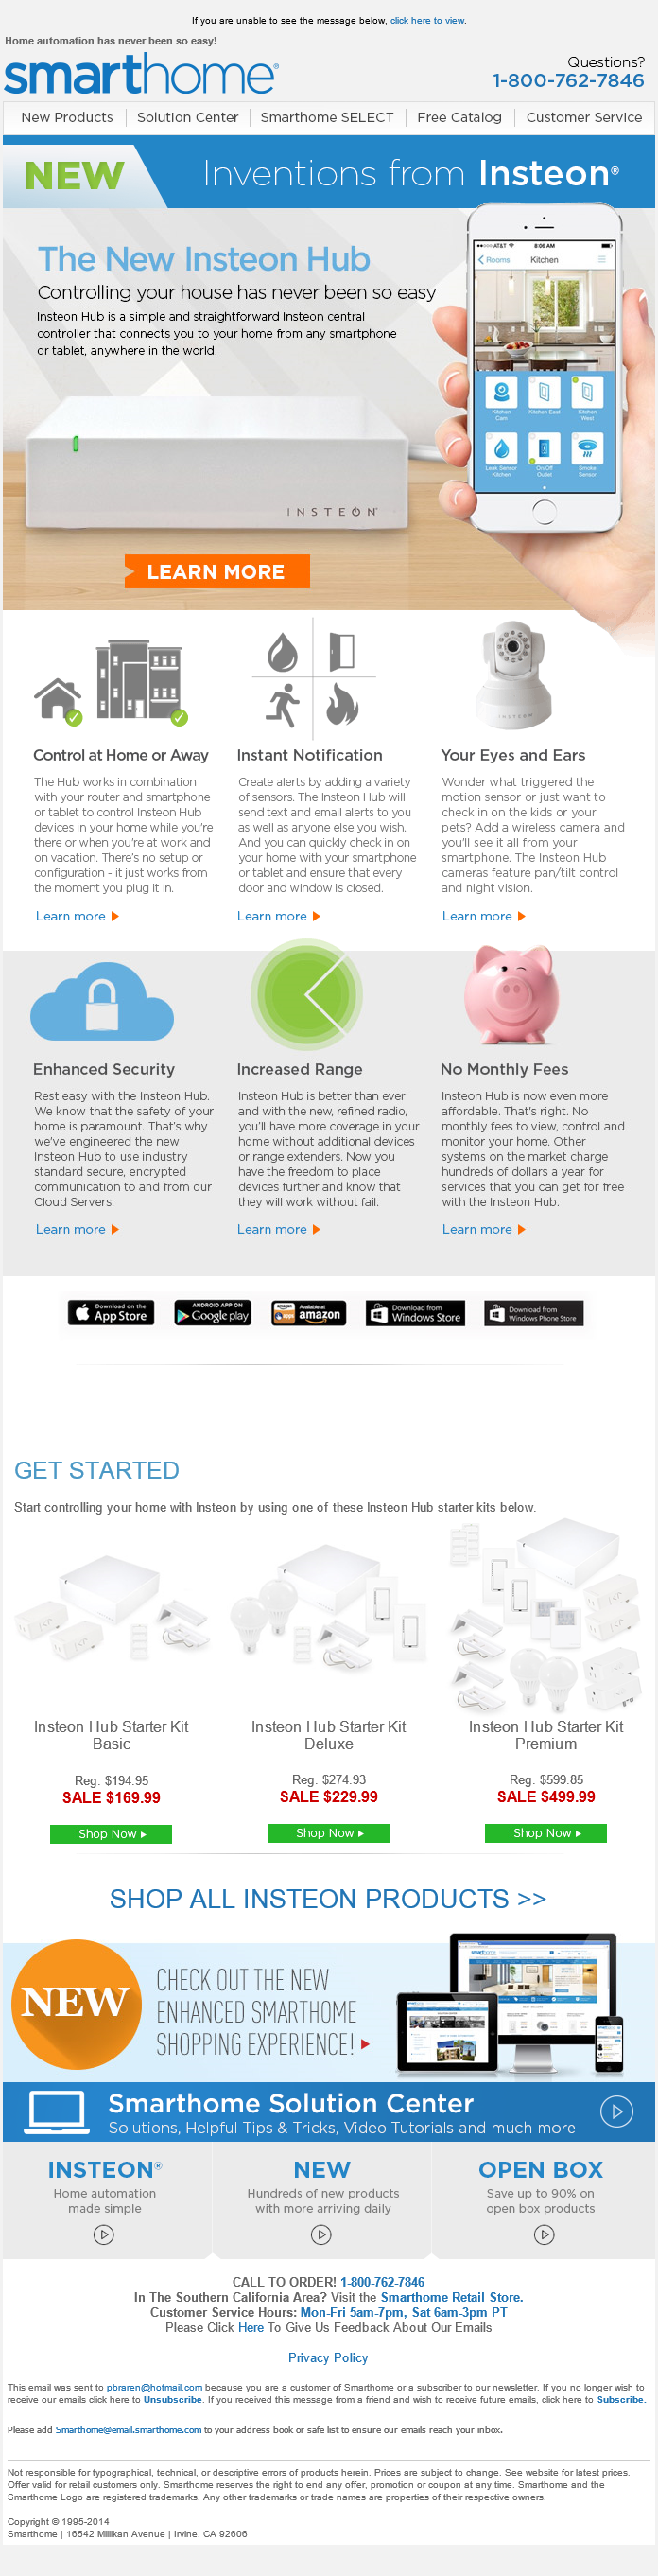 Nov-24-2014-606am-eastern-email-Introducing-the-New-Insteon-Hub-–-Now-Better-Than-Ever